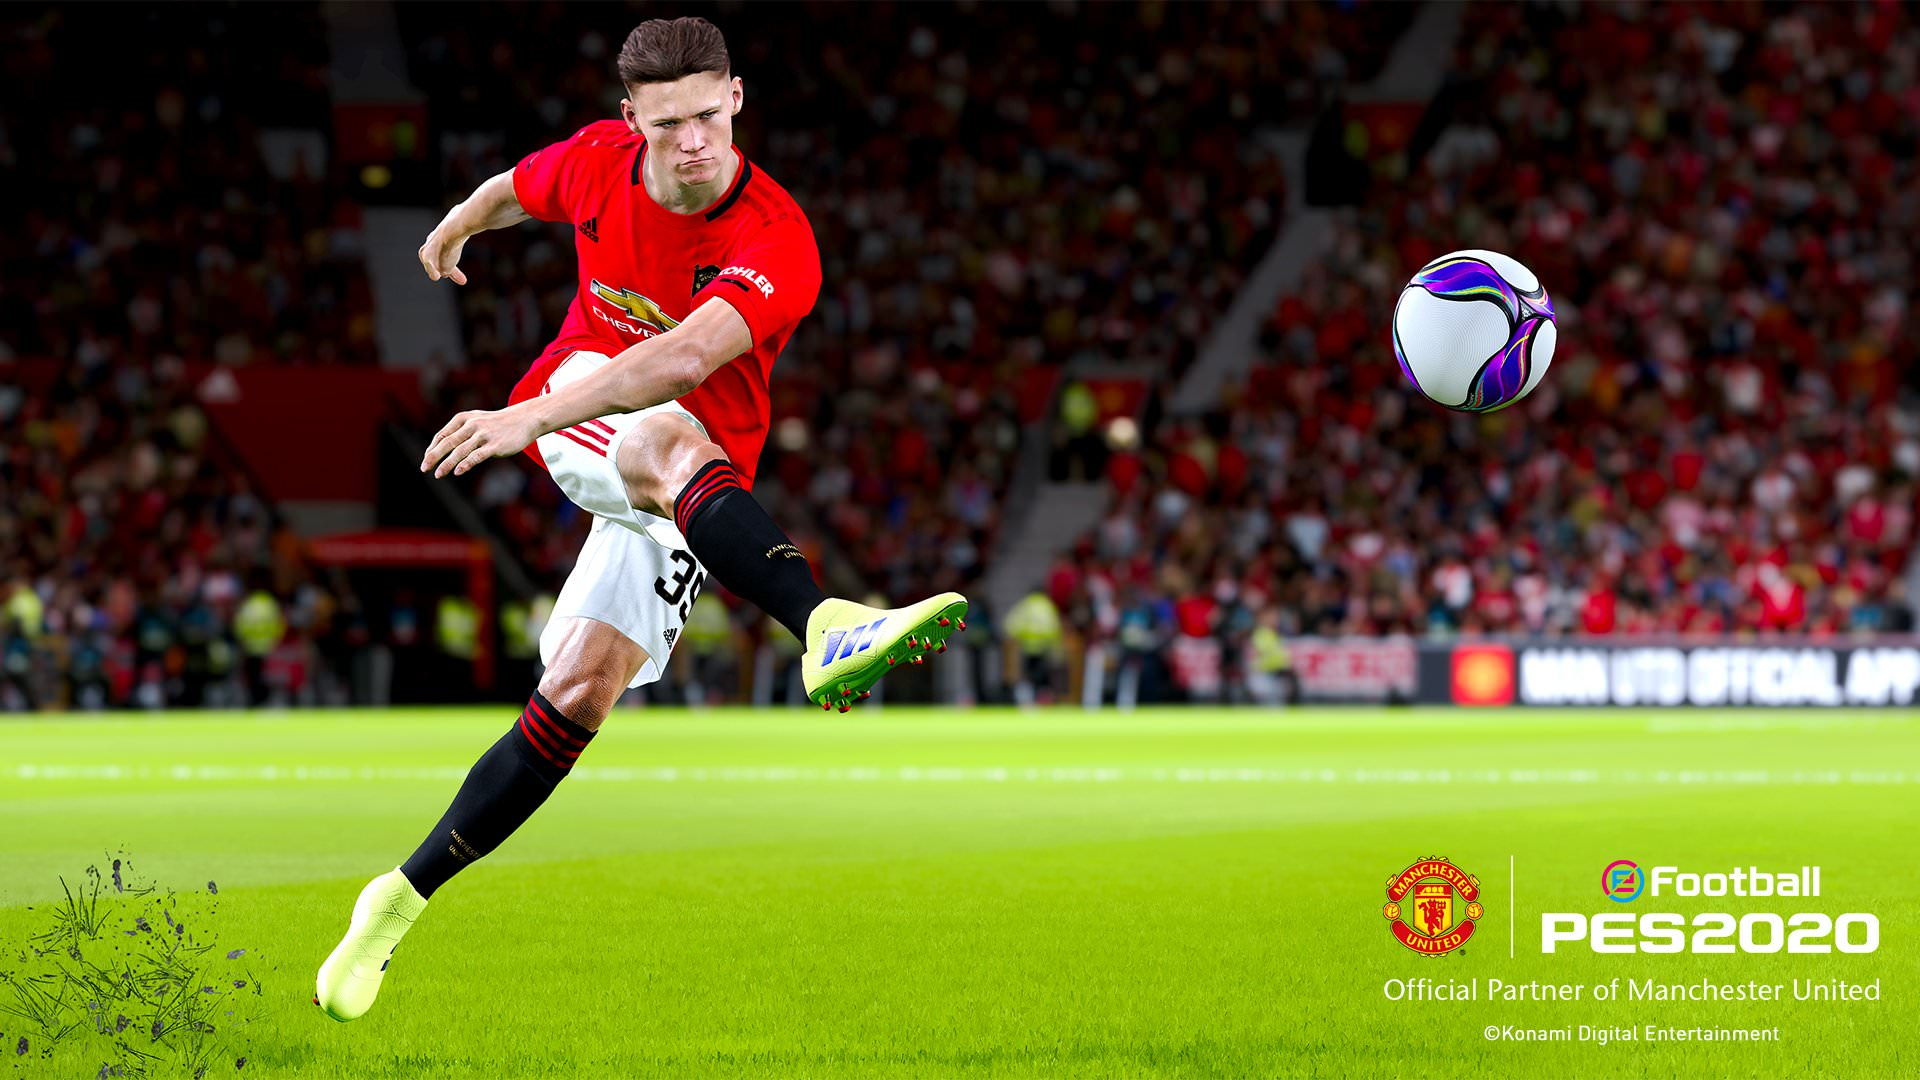 A player for Manchester United takes a strong kick across his body, launching the ball high in the air